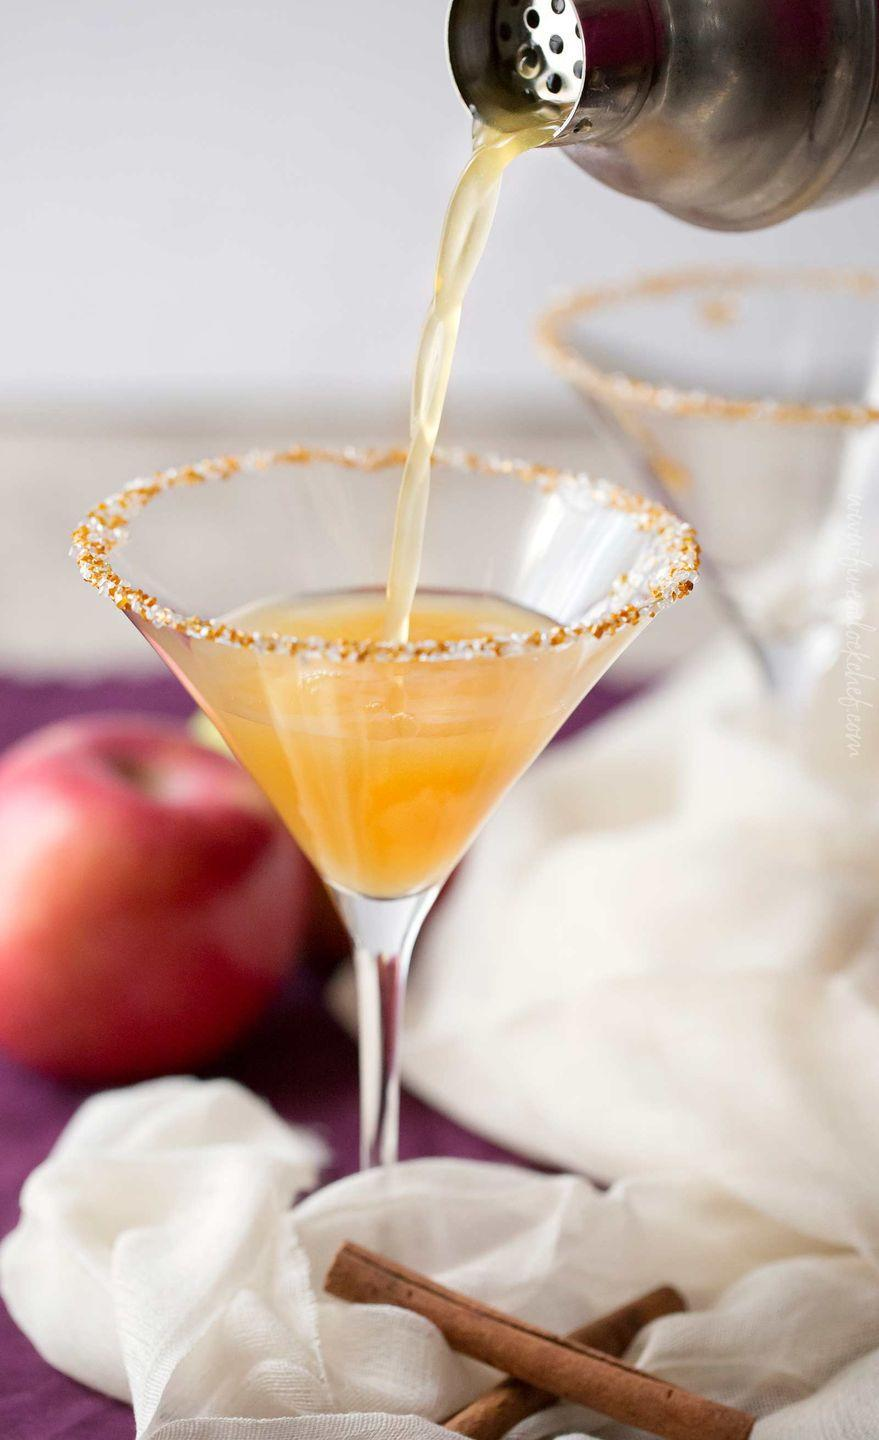 "<p>A little apple cider, a little caramel vodka, and a cocktail shaker is all you need for this sweet, seasonal drink.</p><p><strong>Get the recipe at <a href=""https://www.thechunkychef.com/spiced-caramel-apple-martini/"" rel=""nofollow noopener"" target=""_blank"" data-ylk=""slk:The Chunky Chef"" class=""link rapid-noclick-resp"">The Chunky Chef</a>.</strong></p><p><a class=""link rapid-noclick-resp"" href=""https://www.amazon.com/dp/B07YBJ483D?tag=syn-yahoo-20&ascsubtag=%5Bartid%7C10050.g.34690892%5Bsrc%7Cyahoo-us"" rel=""nofollow noopener"" target=""_blank"" data-ylk=""slk:SHOP BAR TOOLS"">SHOP BAR TOOLS</a></p>"